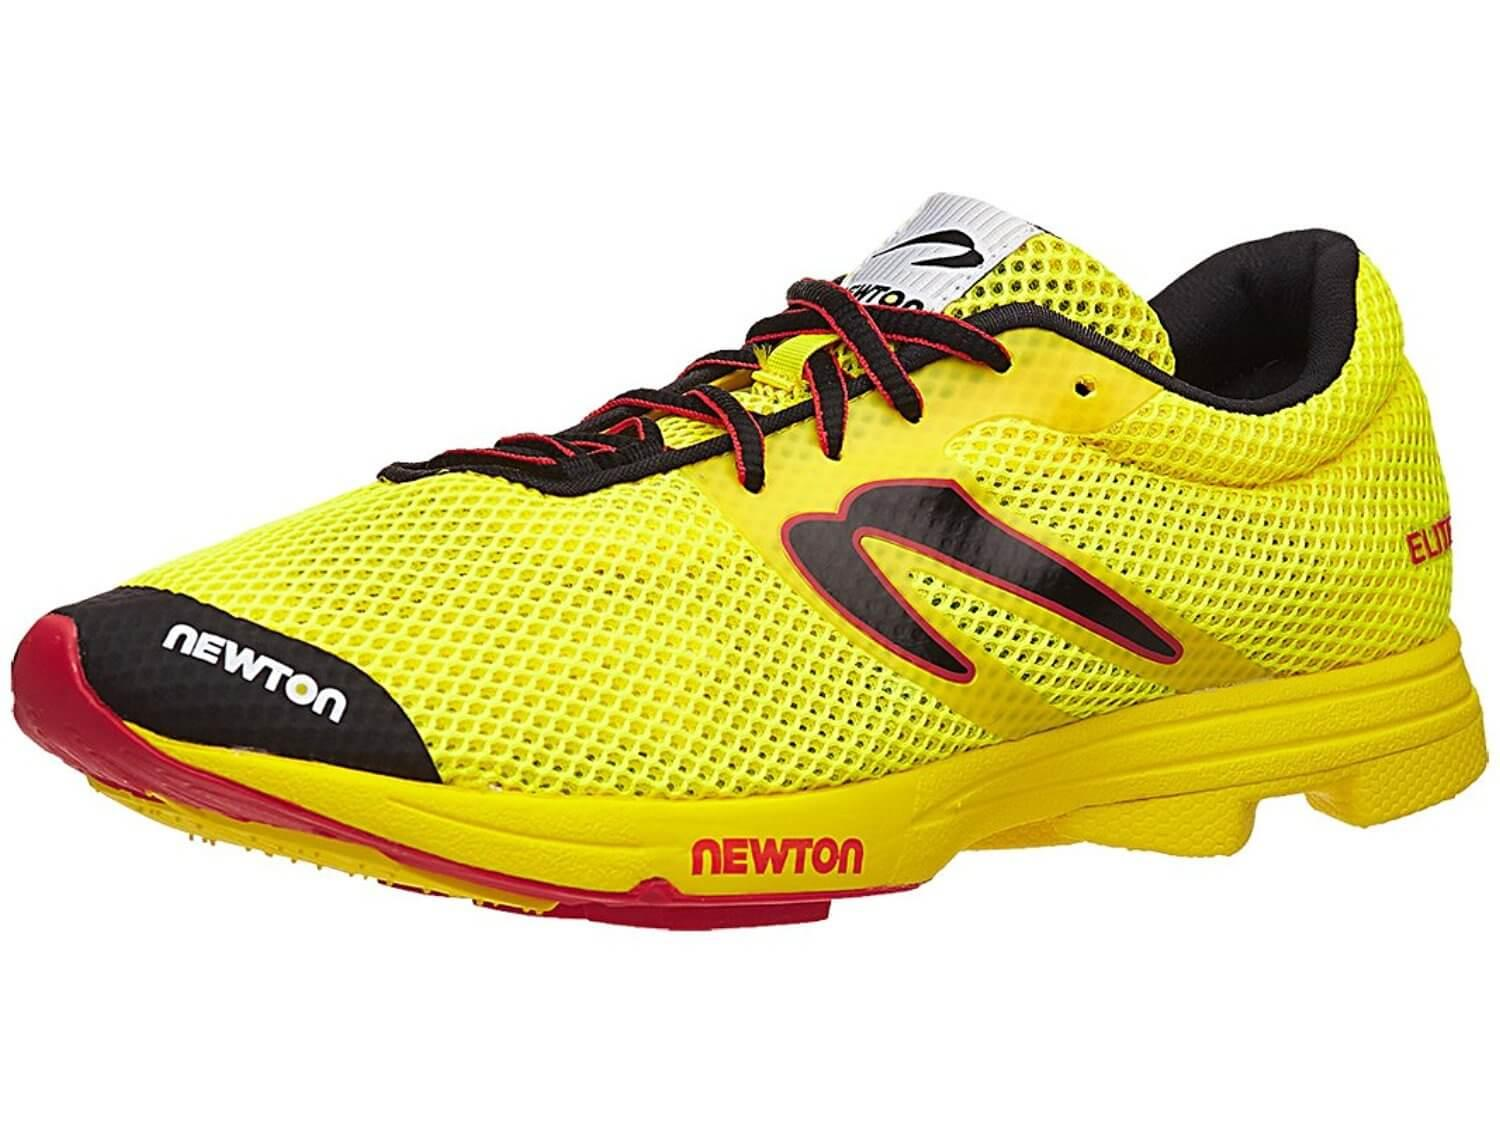 the Newton Distance Elite is a high-performance trainer for runners serious about competitive racing